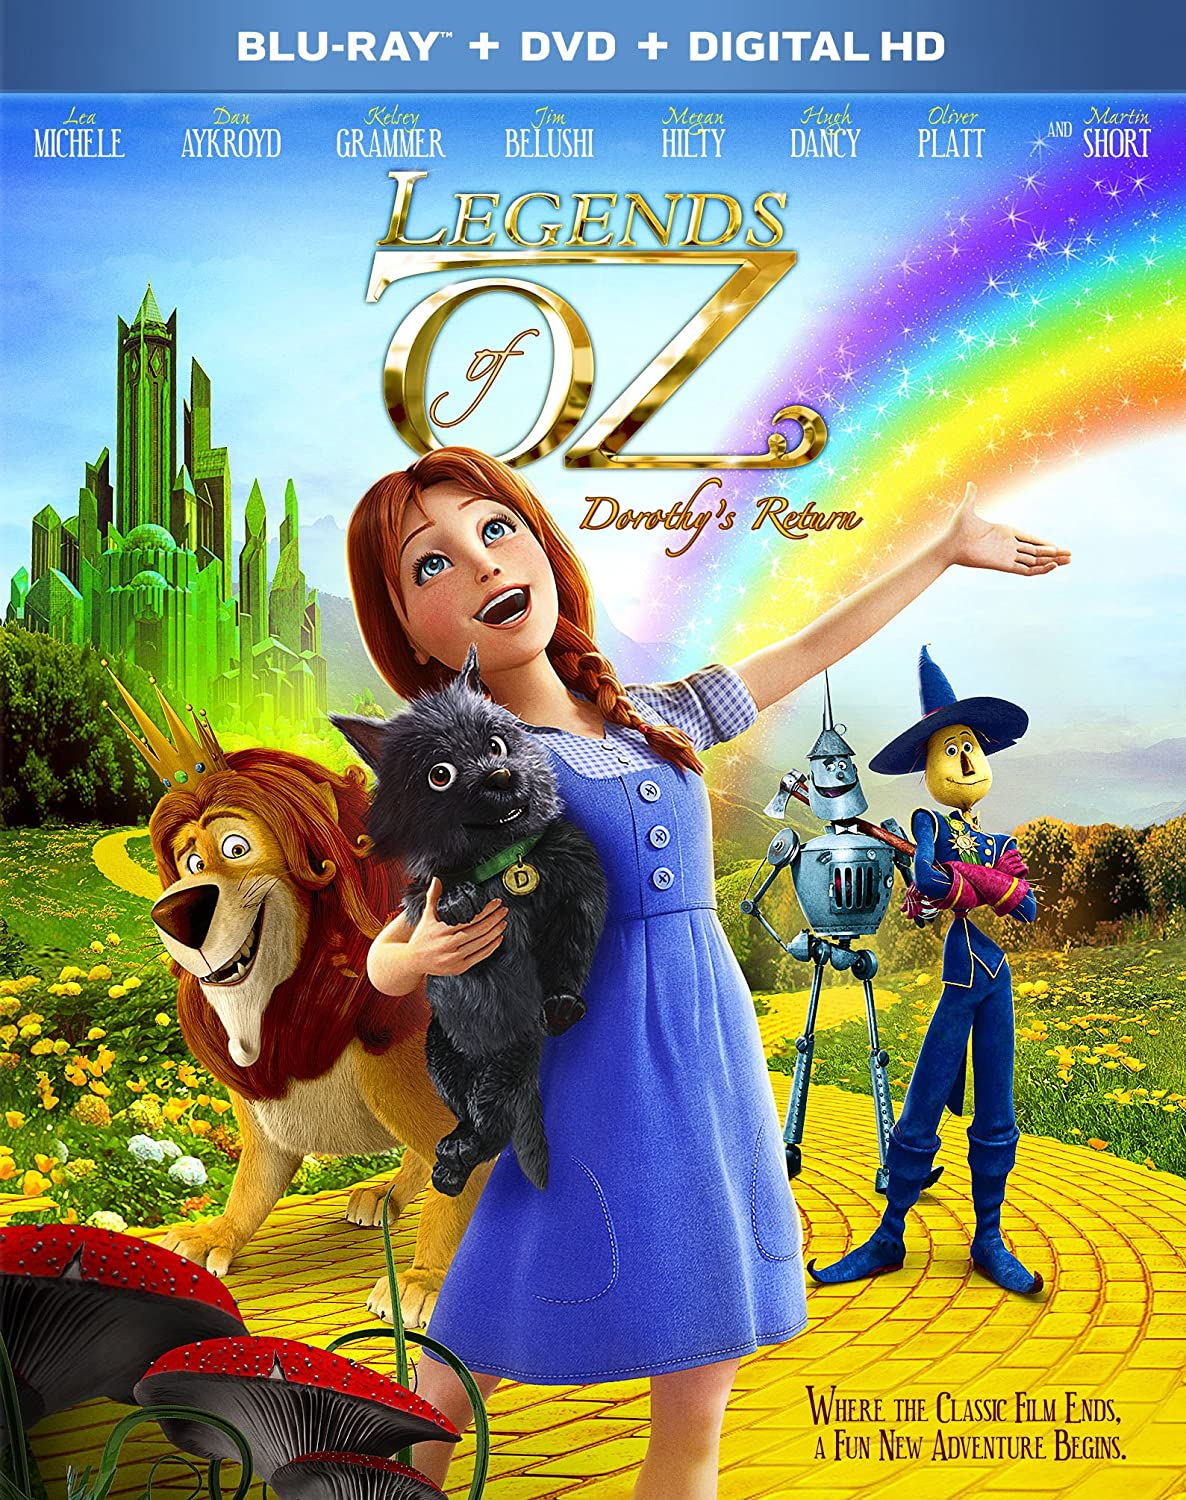 http://www.amazon.com/Legends-Oz-Dorothys-Return-Blu-ray/dp/B00KO10QHC/